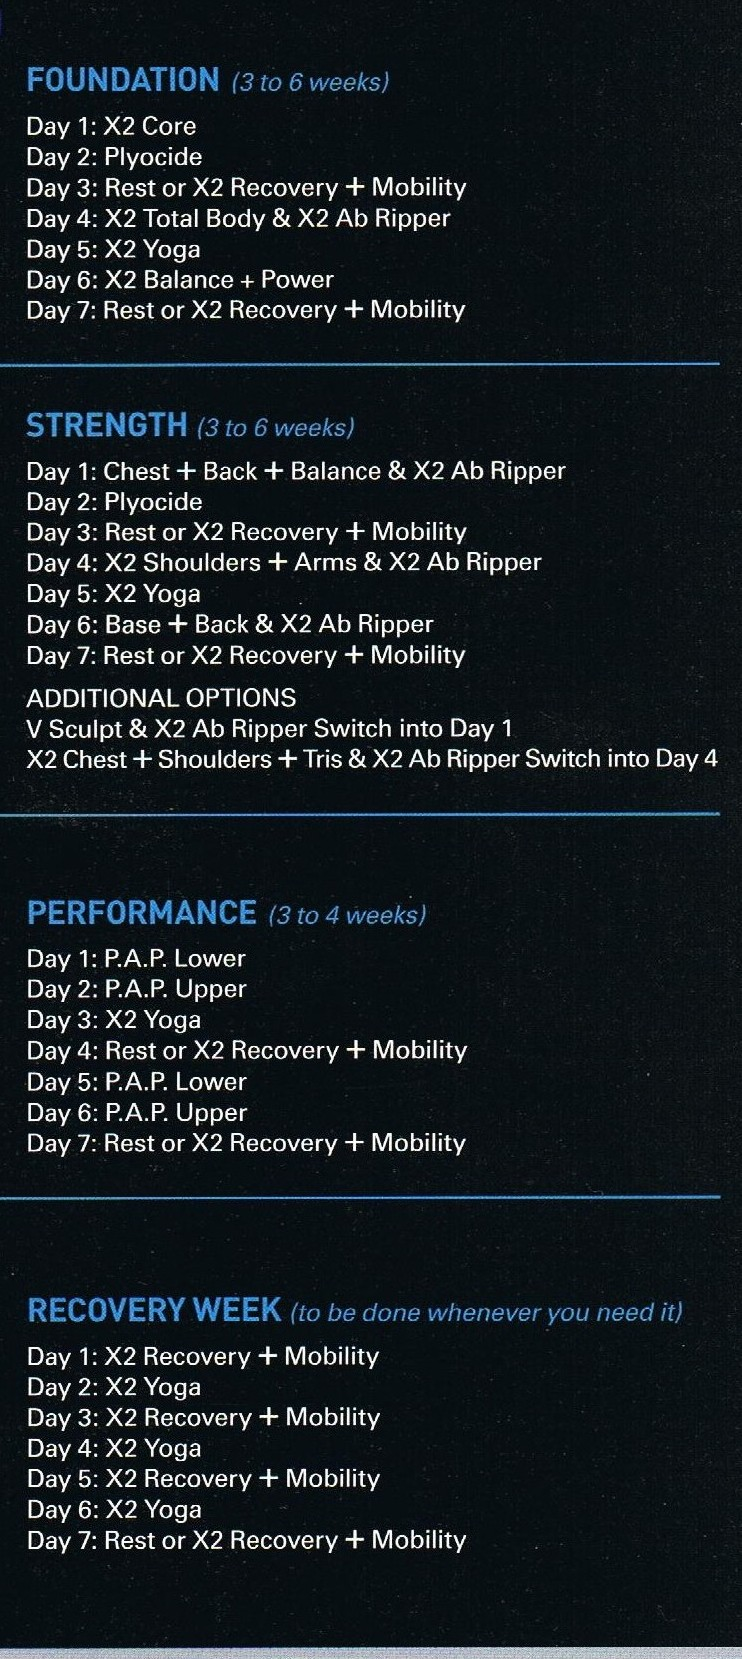 P90X2-Workout-Schedule , calories burned